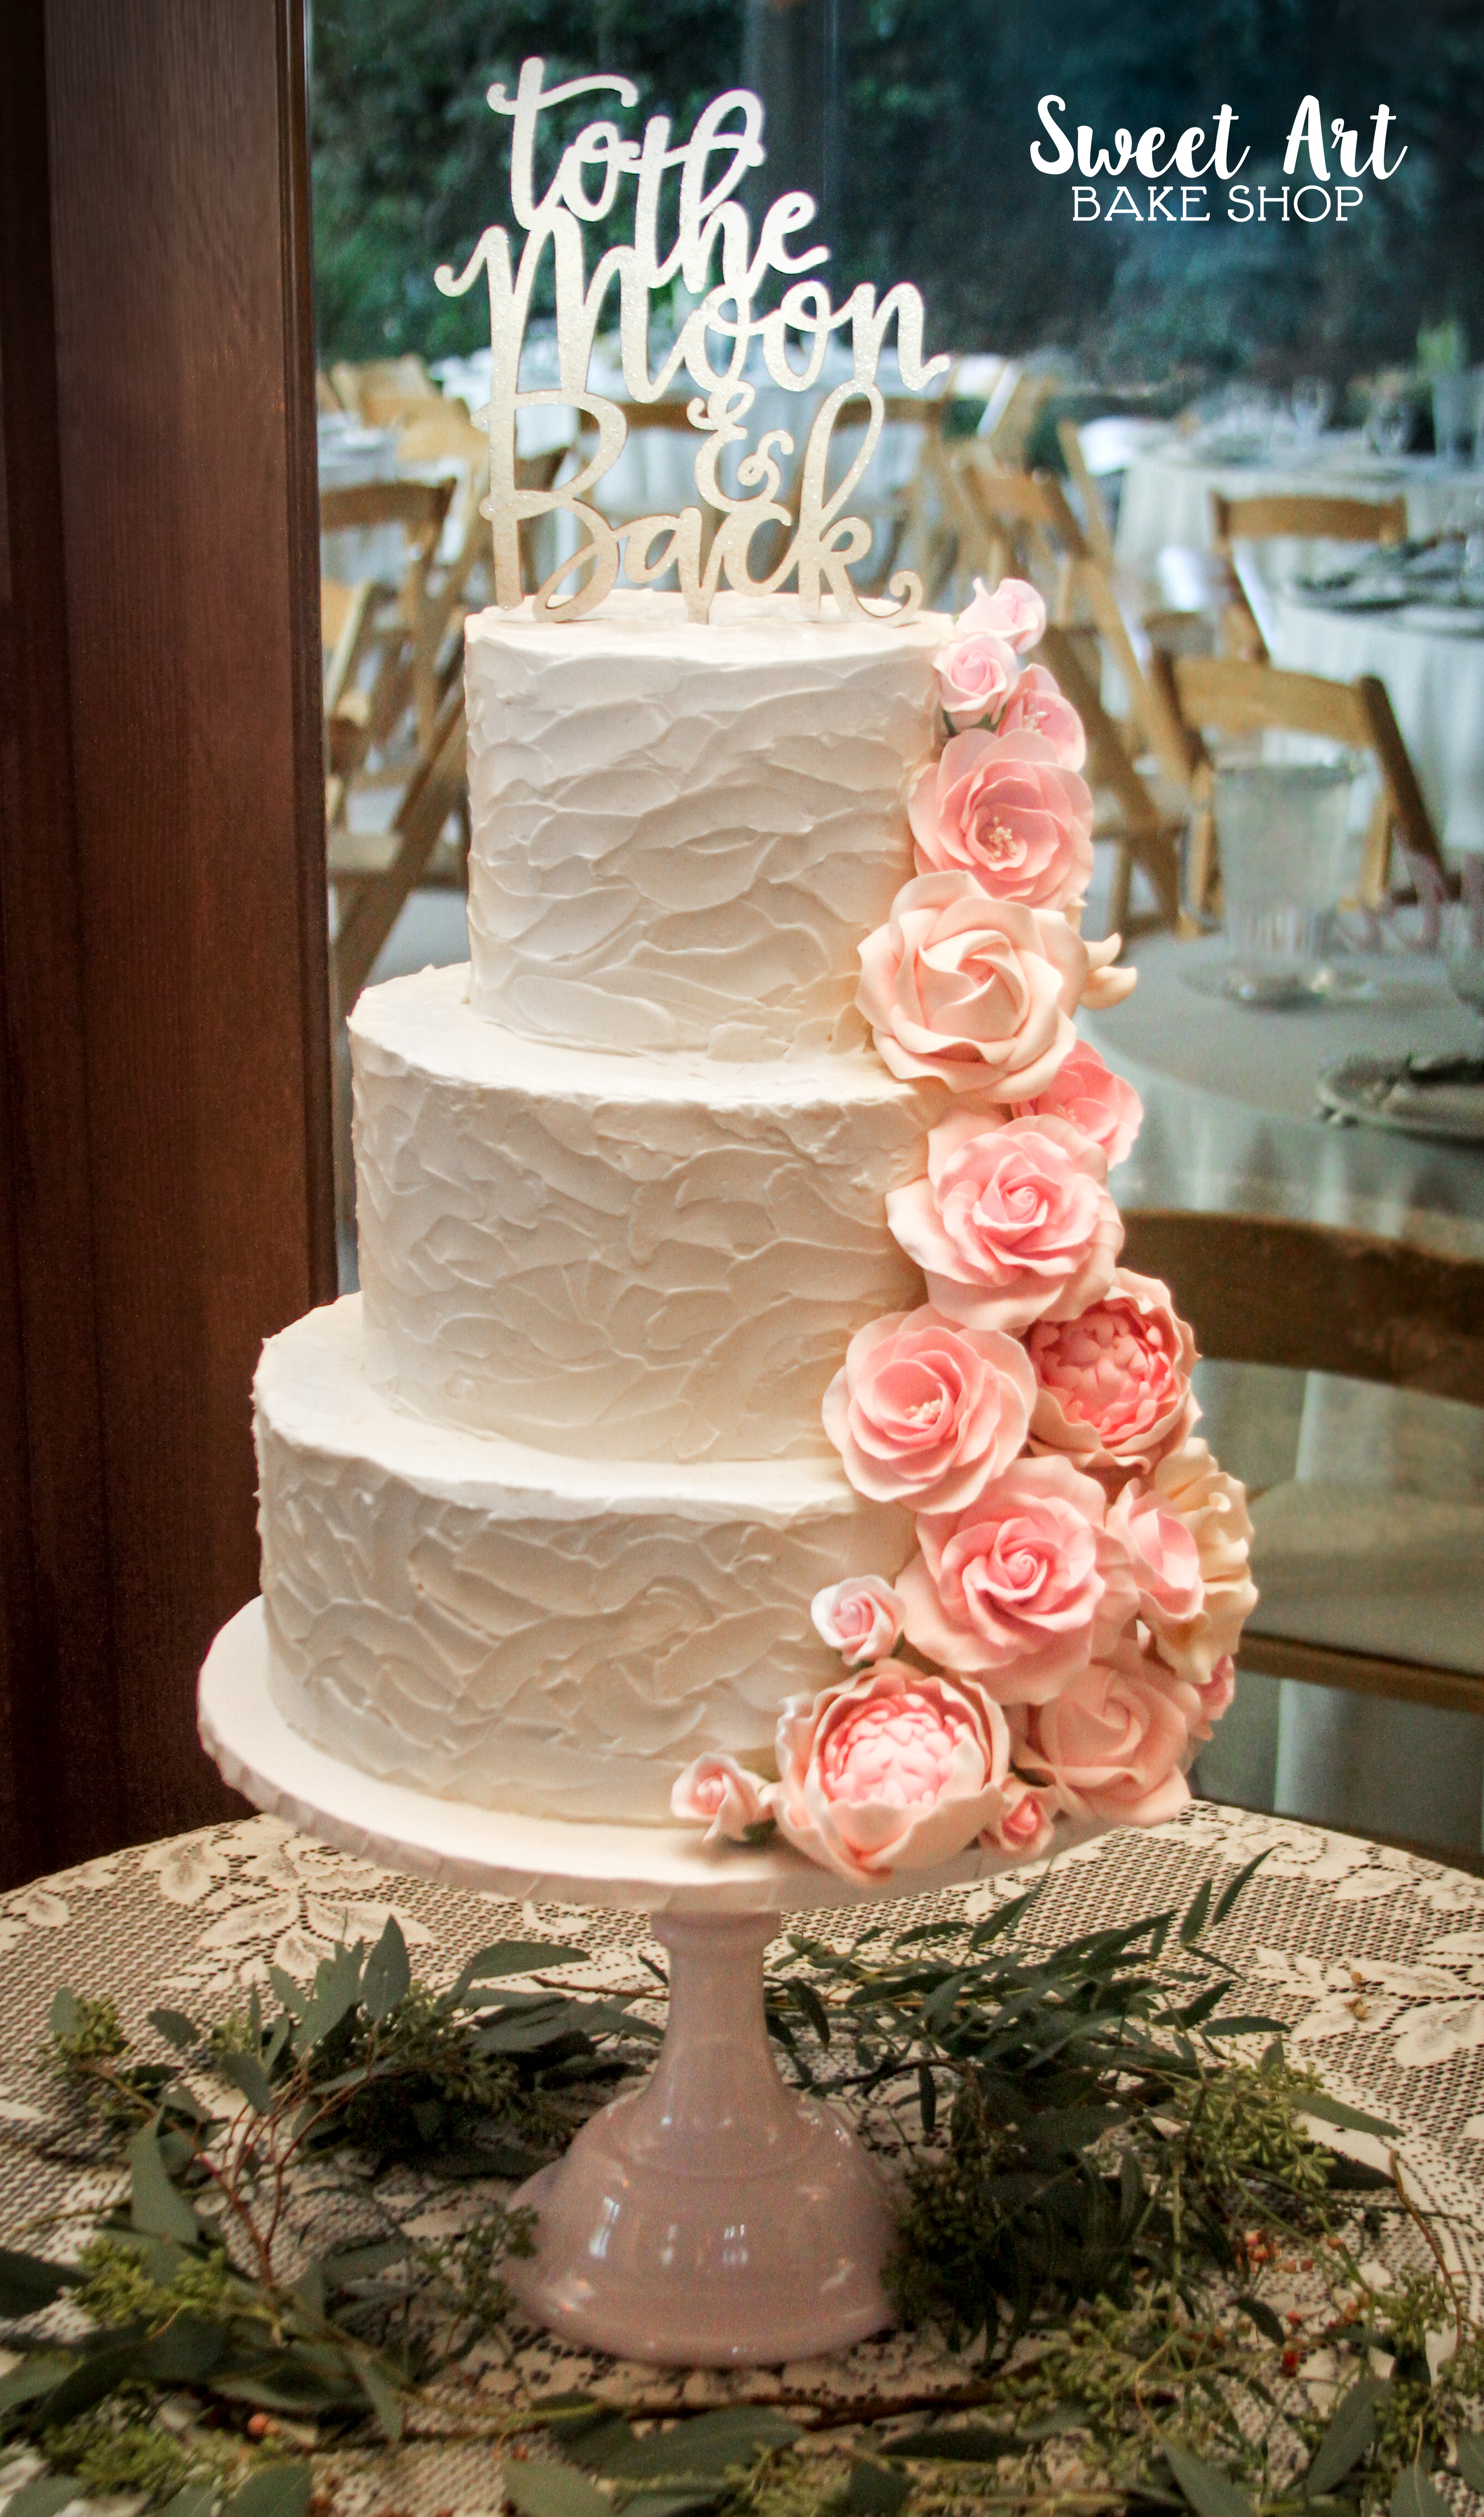 Textured Frosting with Sugar Flowers